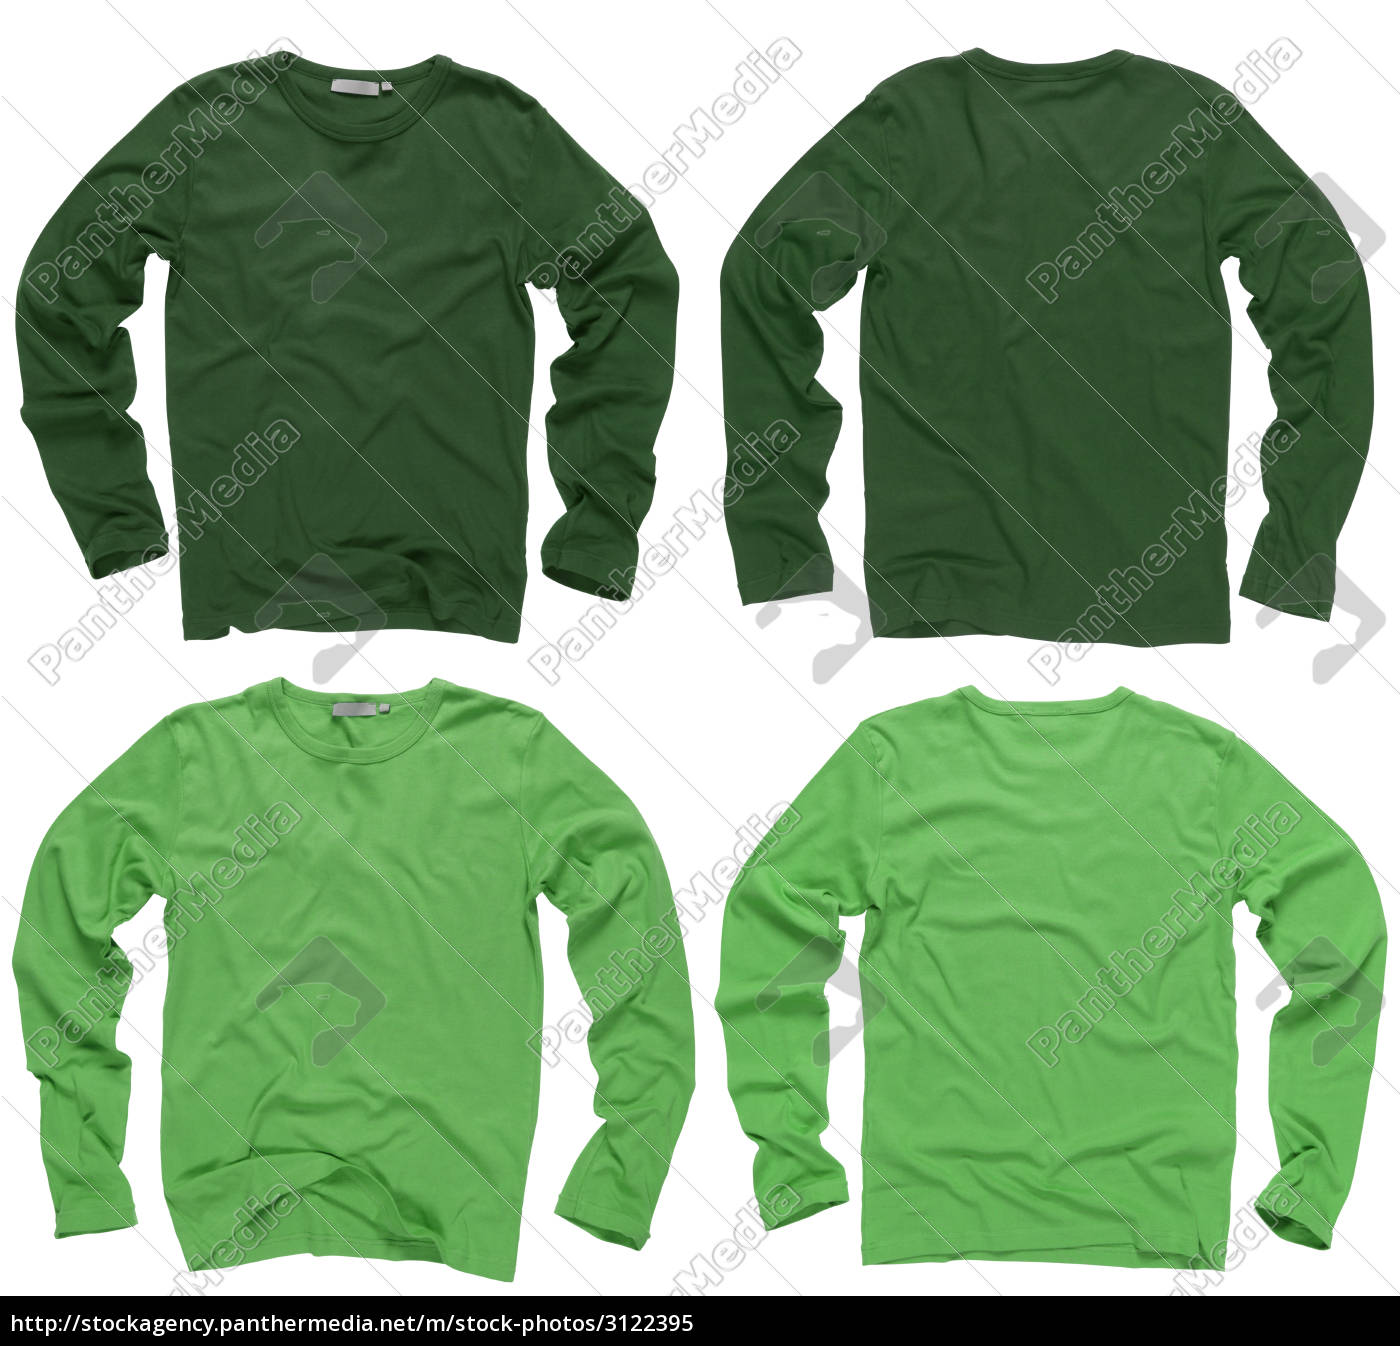 blank, green, long, sleeve, shirts - 3122395